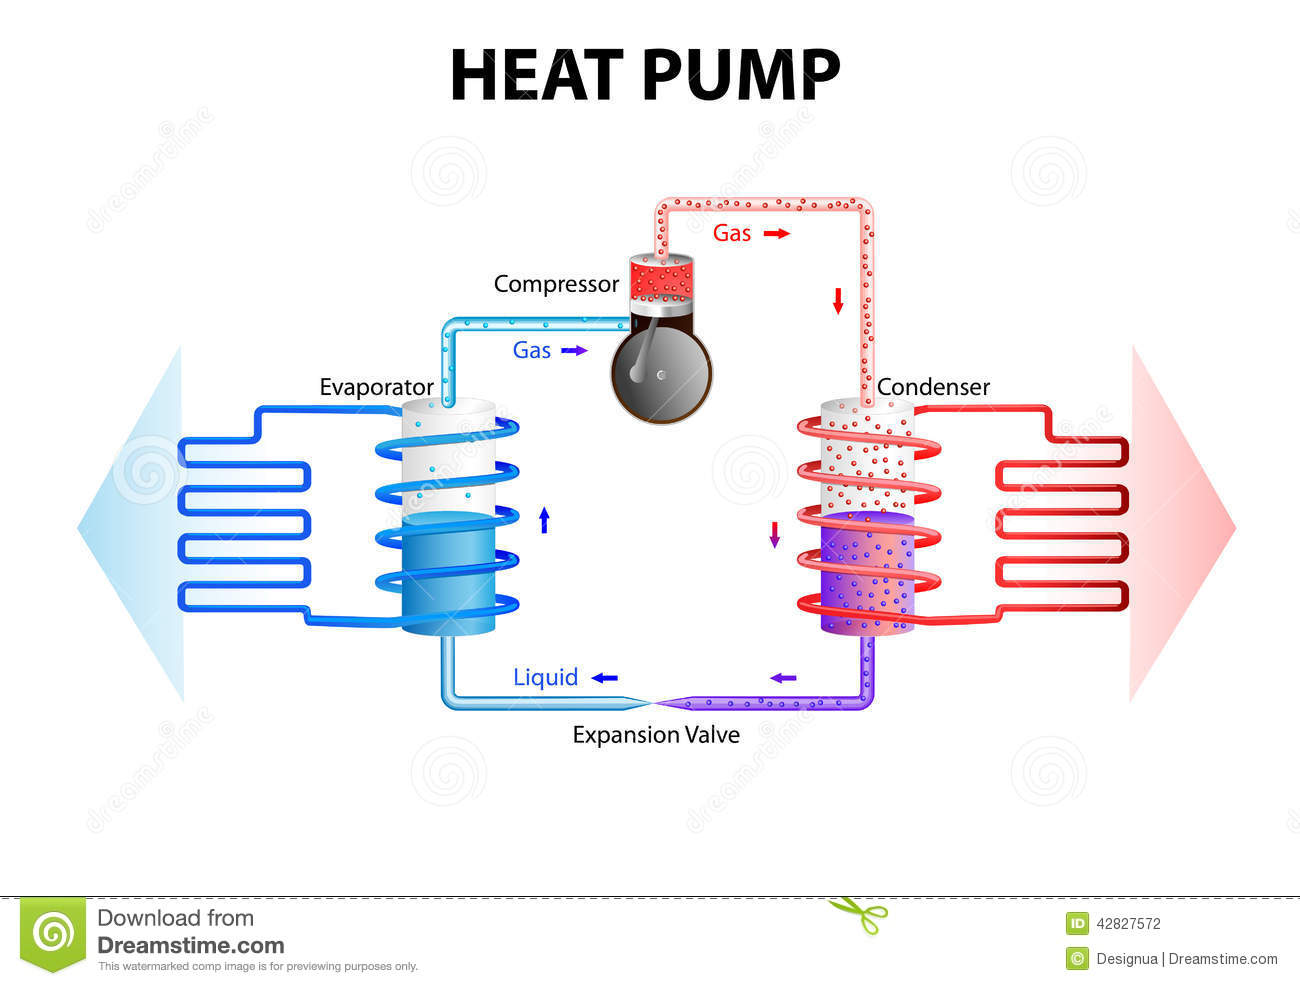 heat pump cooling system works extracting energy stored ground water converts building heating pumps 42827572 how a air conditioner works grihon com ac, coolers & devices how does air conditioning work diagram at readyjetset.co